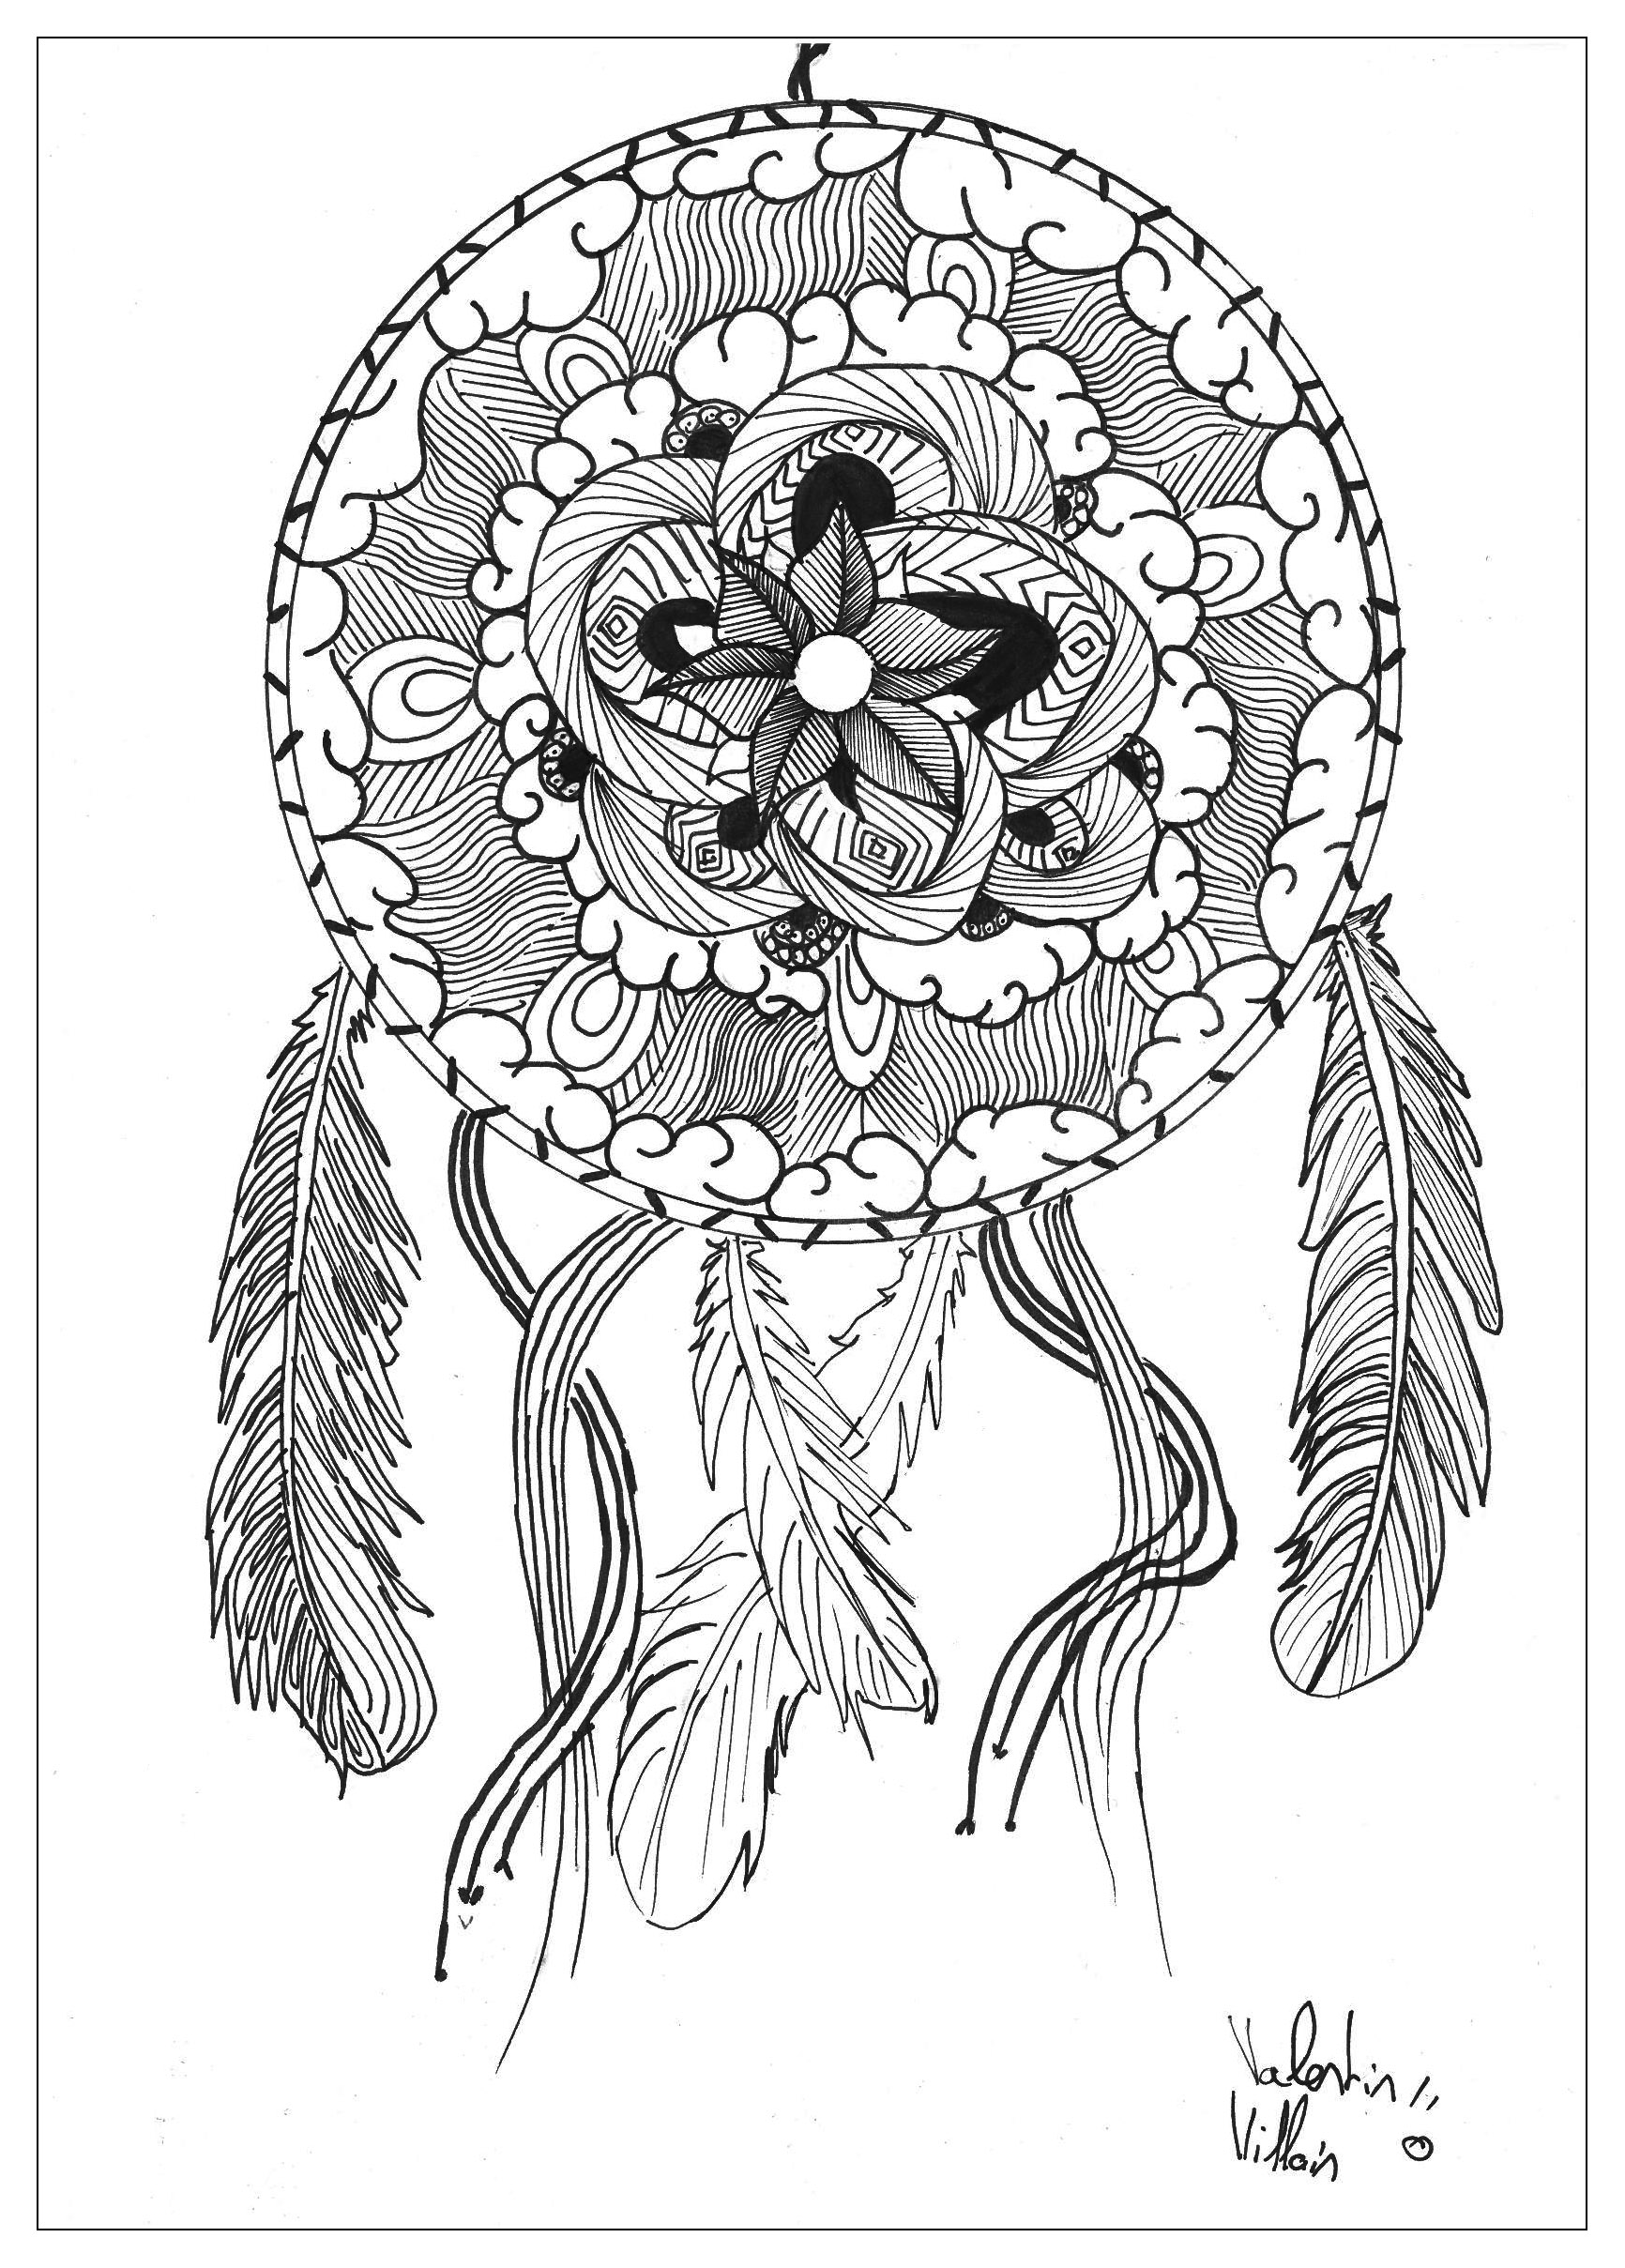 beautiful dreamcatcher in a mandala coloring page from the gallery mandalas artist - Abstract Coloring Pages Adults